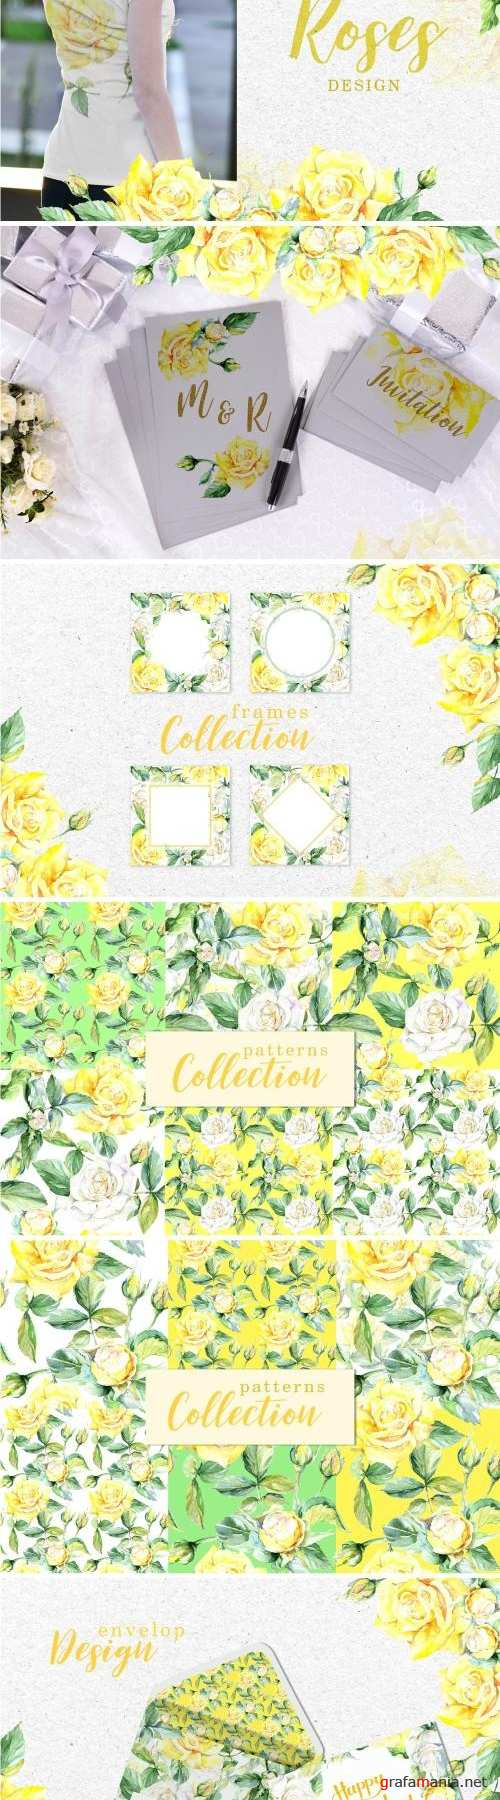 Roses Bright yellow Watercolor png - 3319188